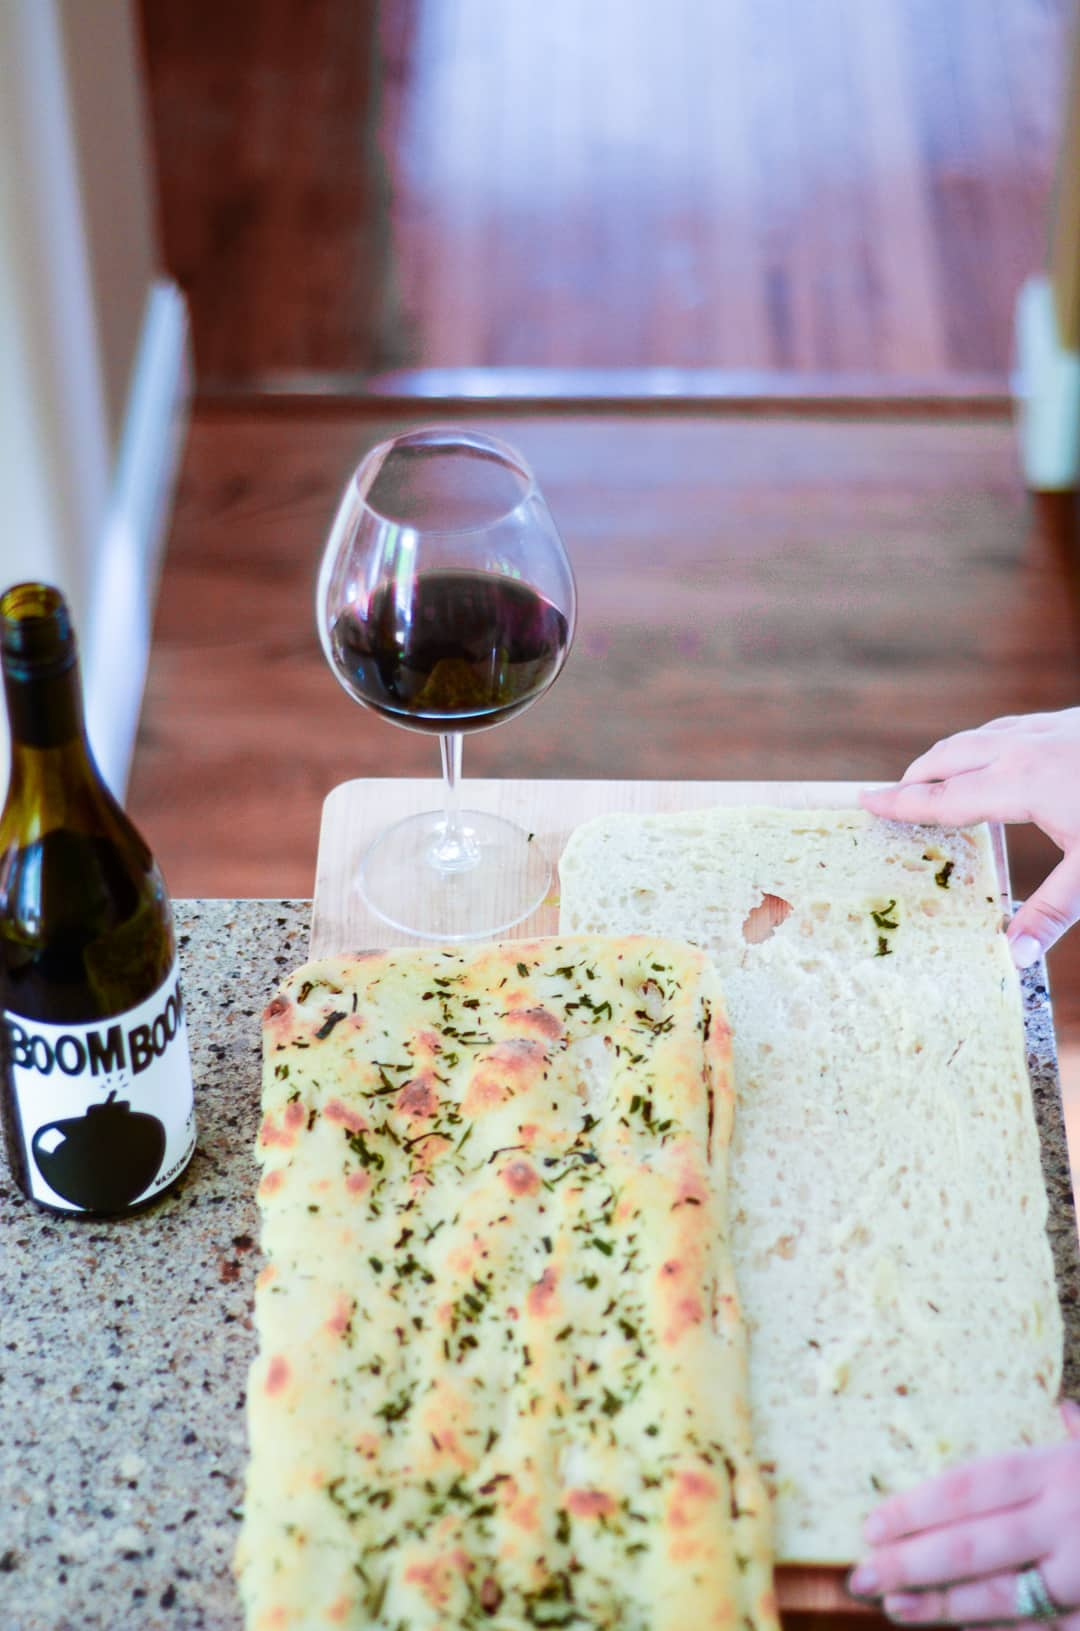 Take your everyday meal from bland to brilliant with Charles Smith Wines and this delicious Gourmet Slab Grilled Cheese - a perfect pairing!!!